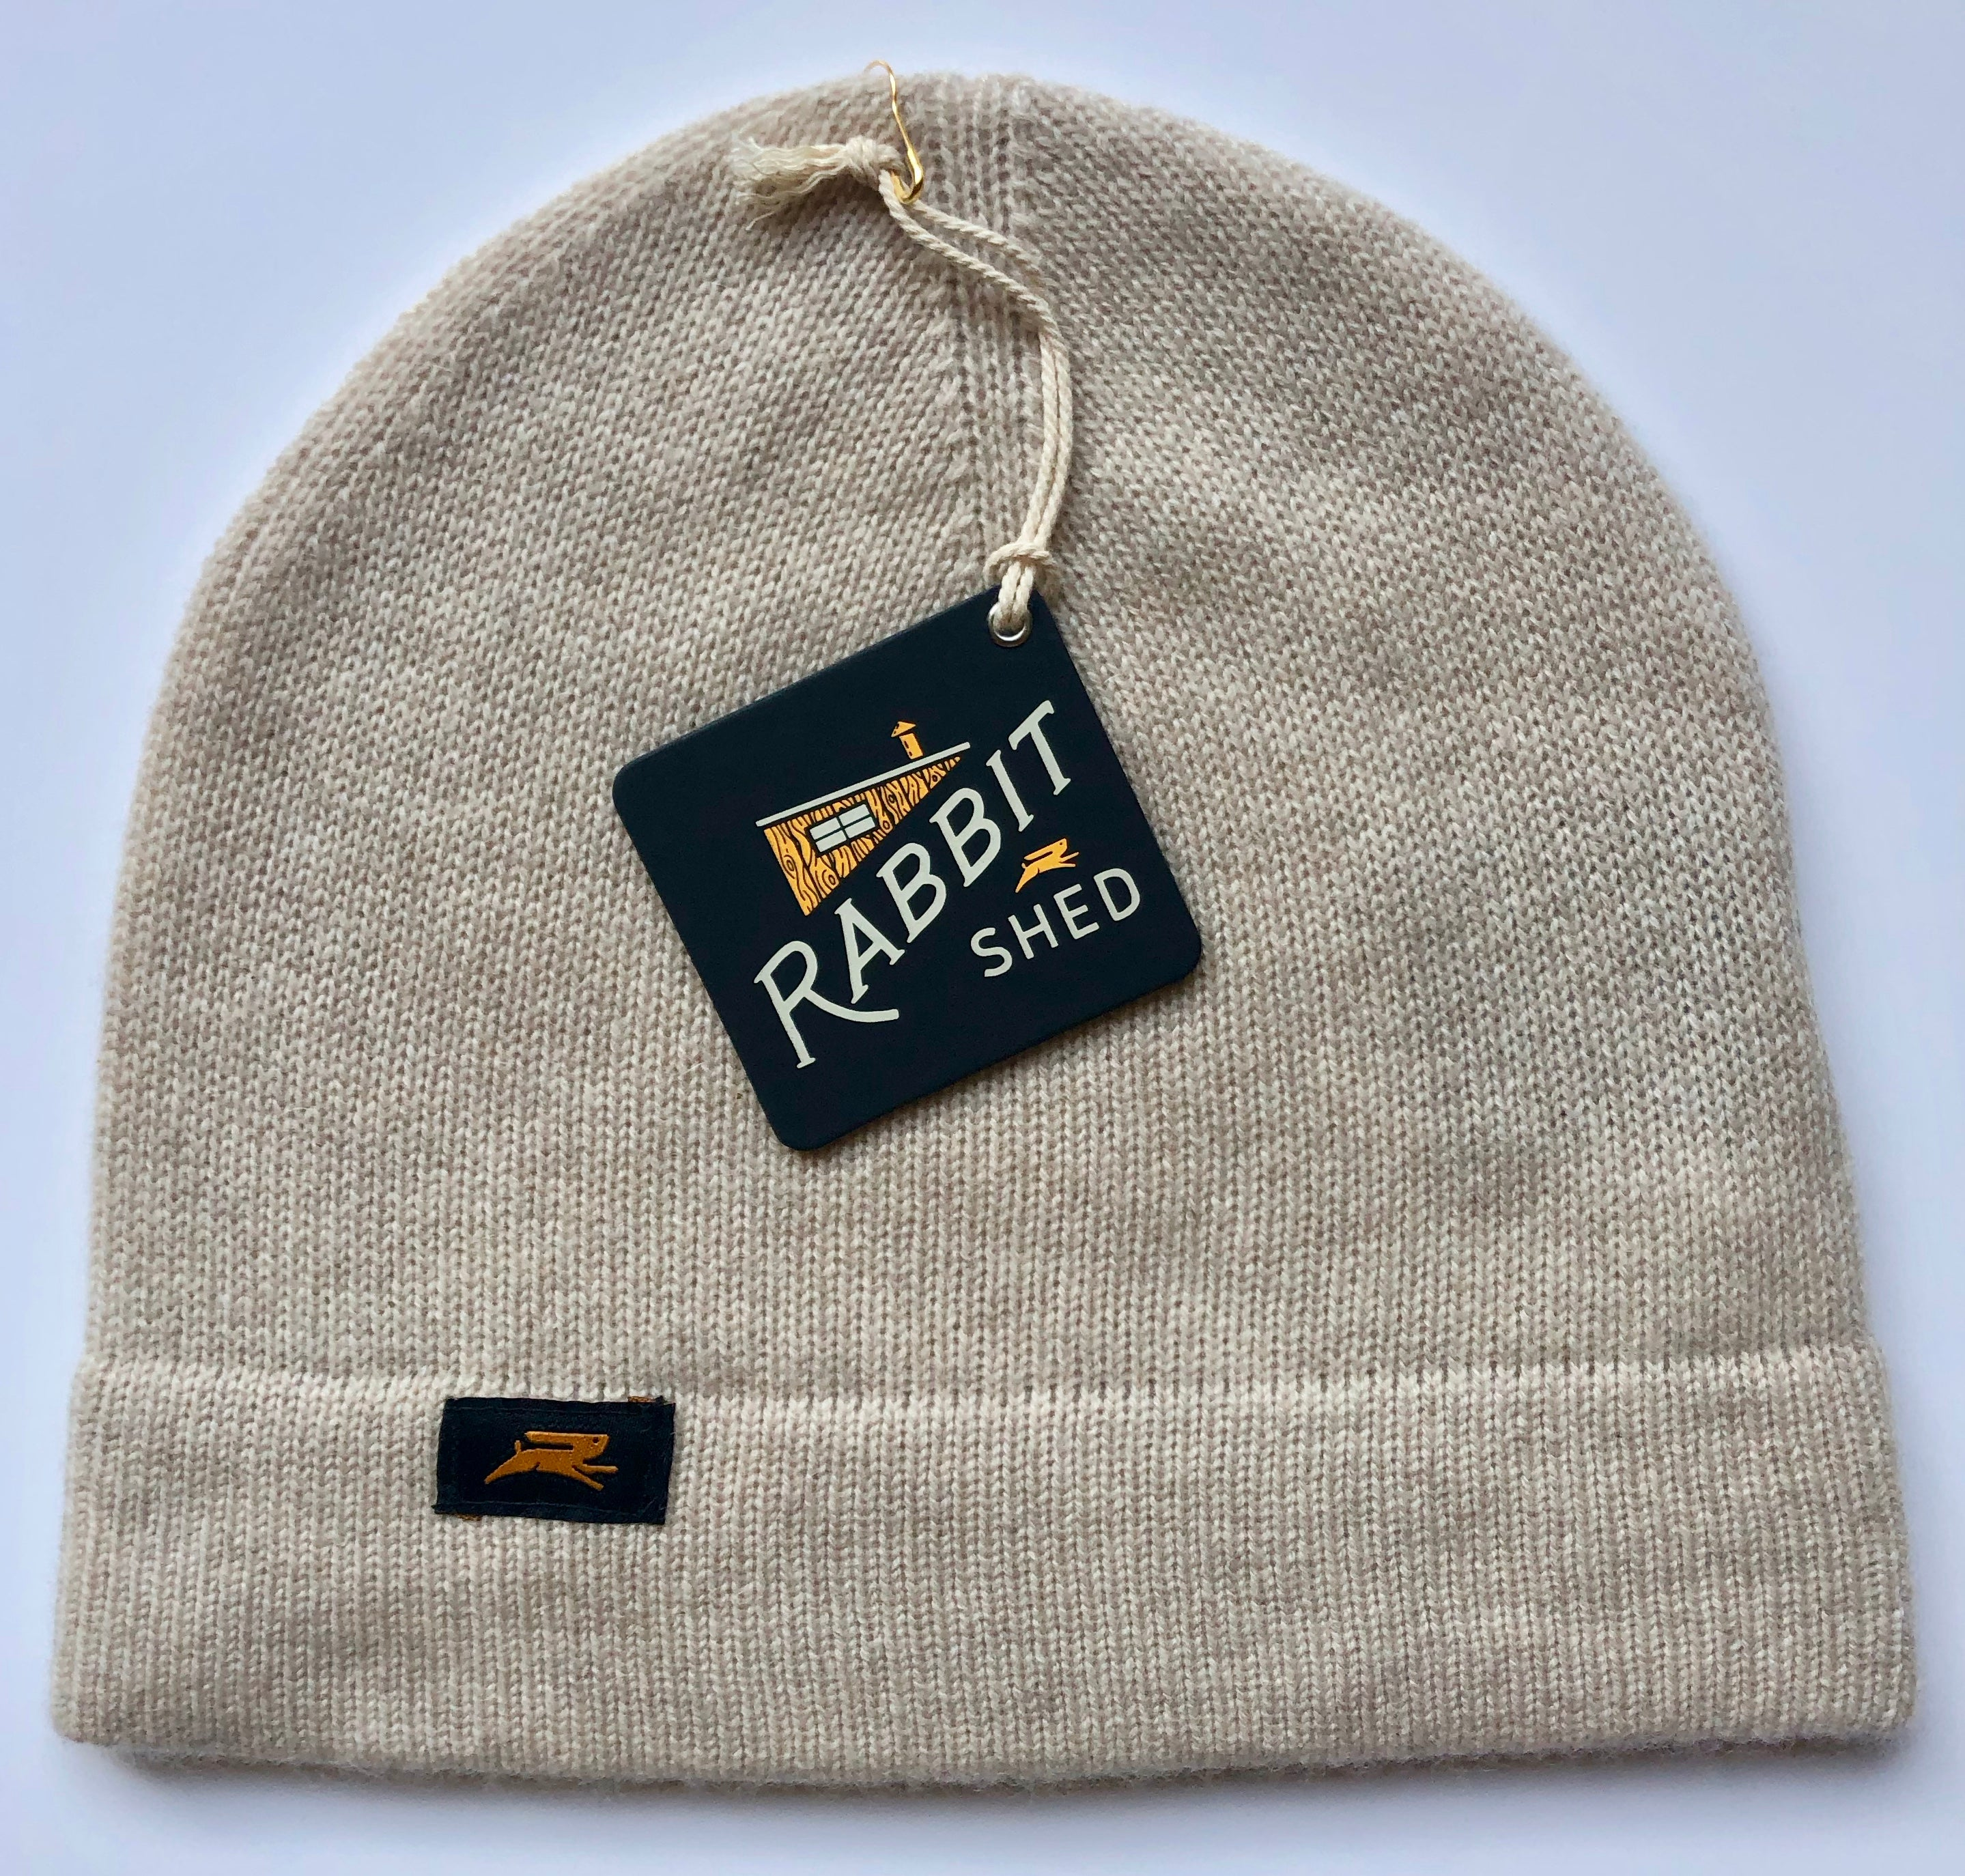 Rabbit Shed Unisex Cashmere Beanie - Oatmeal